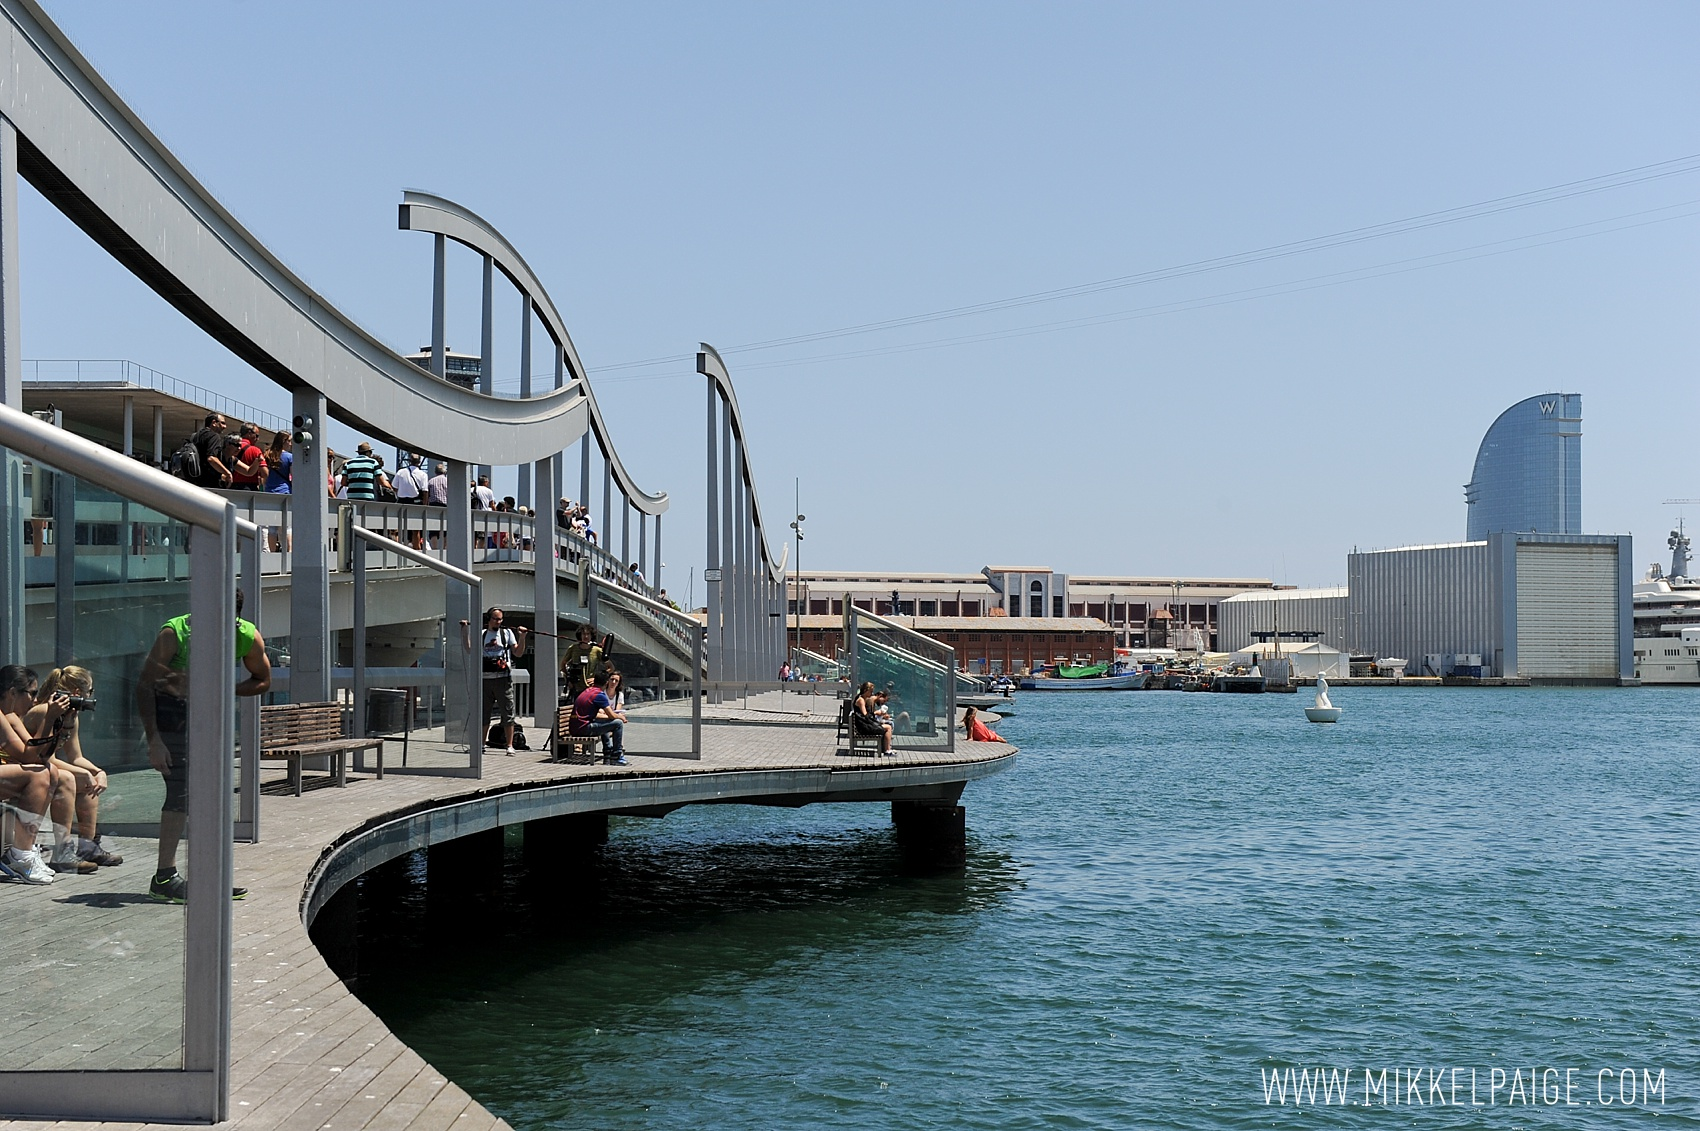 mikkelpaige-travel-europe-spain-barcelona-aquarium_port-wanderlust_0021